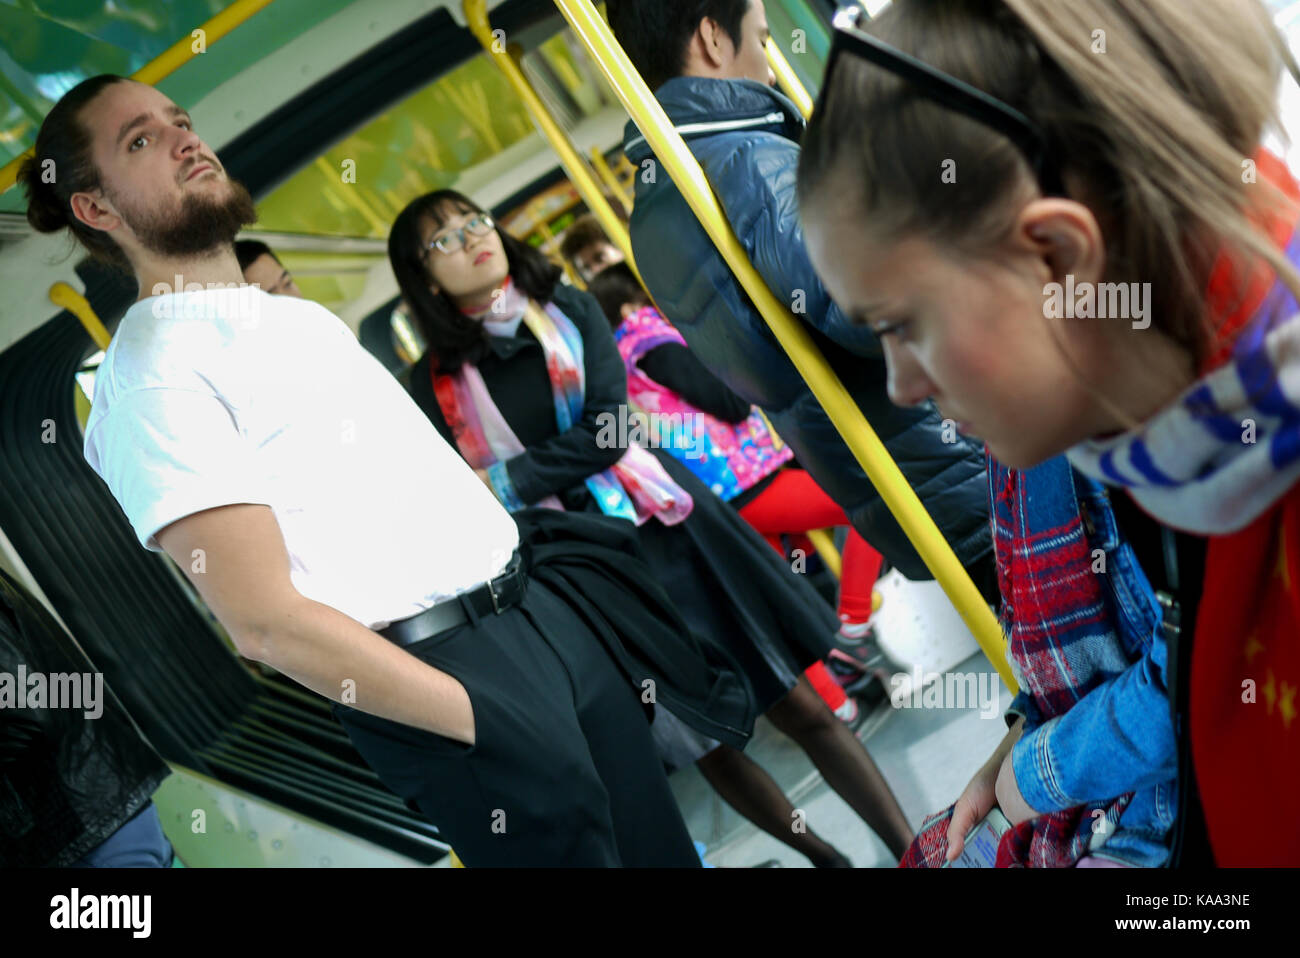 Young people in a T3 tramway wagon, Paris, France - Stock Image